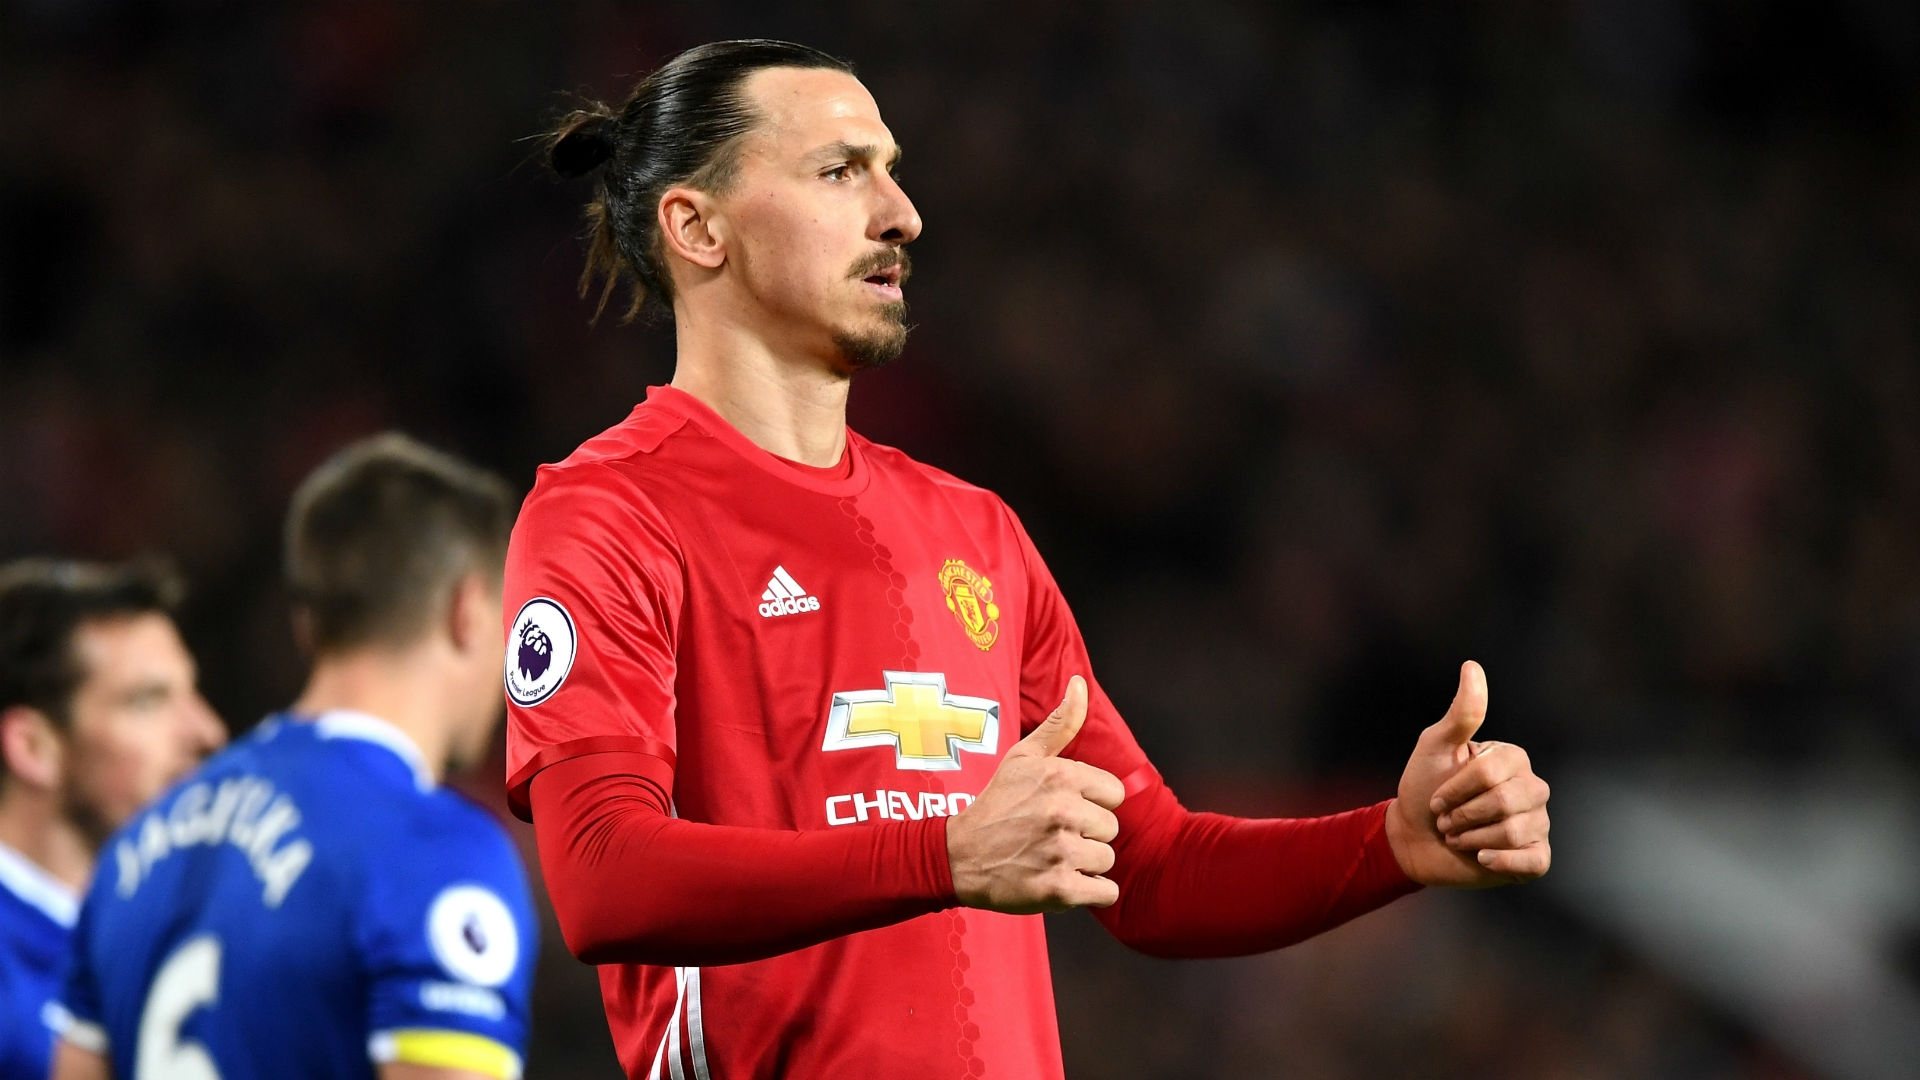 Ibrahimovic to become available early next season